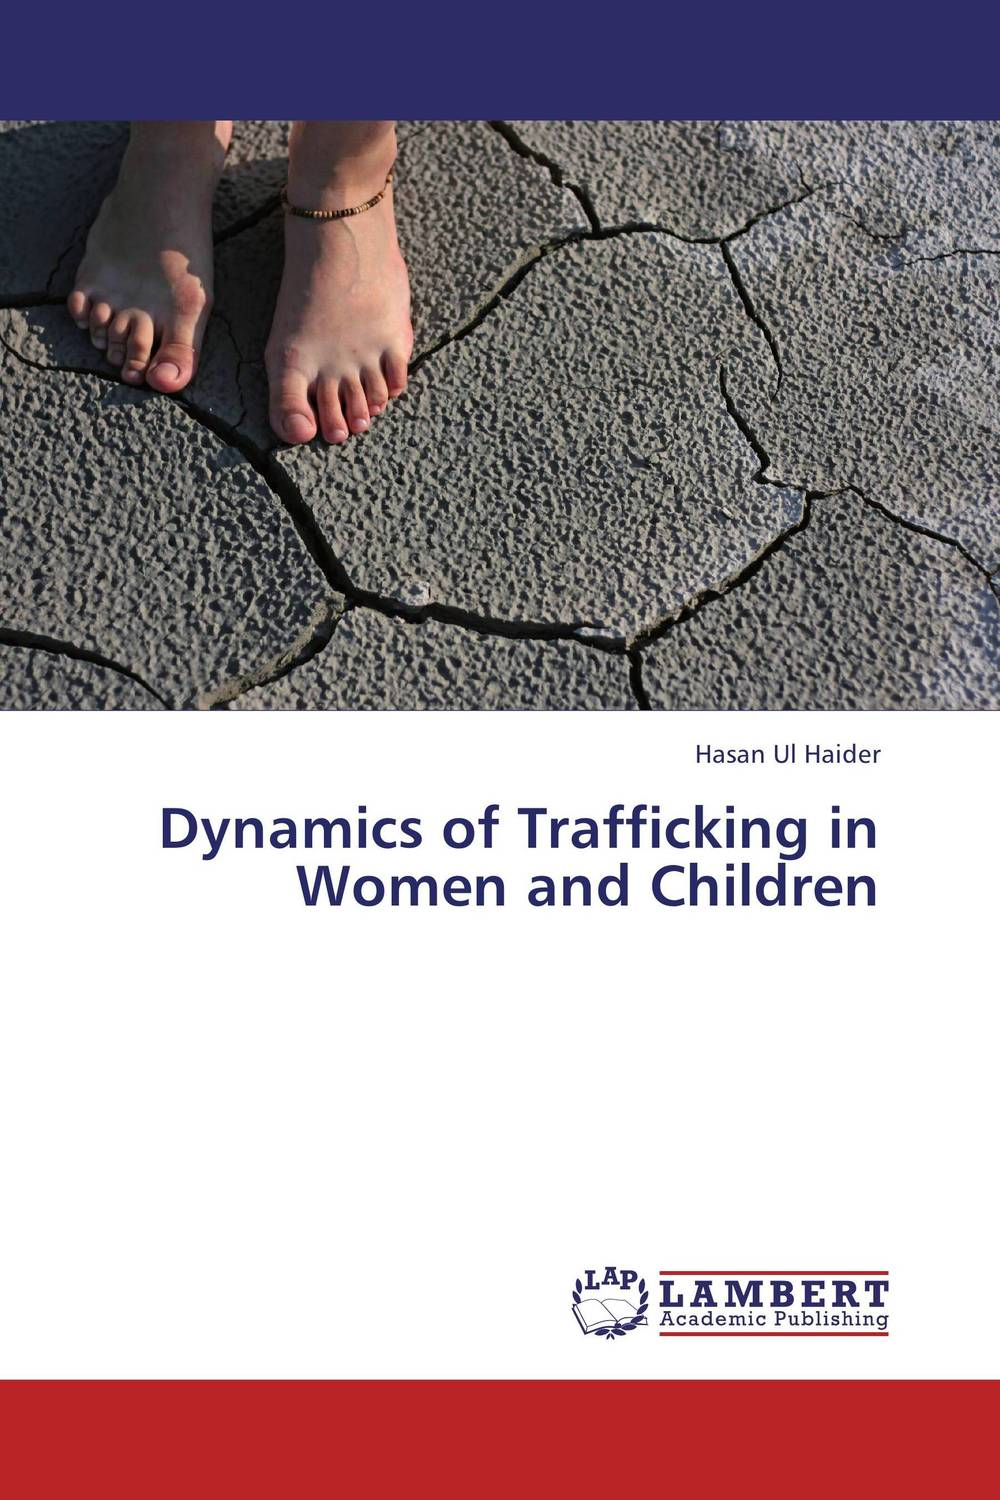 Dynamics of Trafficking in Women and Children brutal inhuman behavior against women in bangladesh